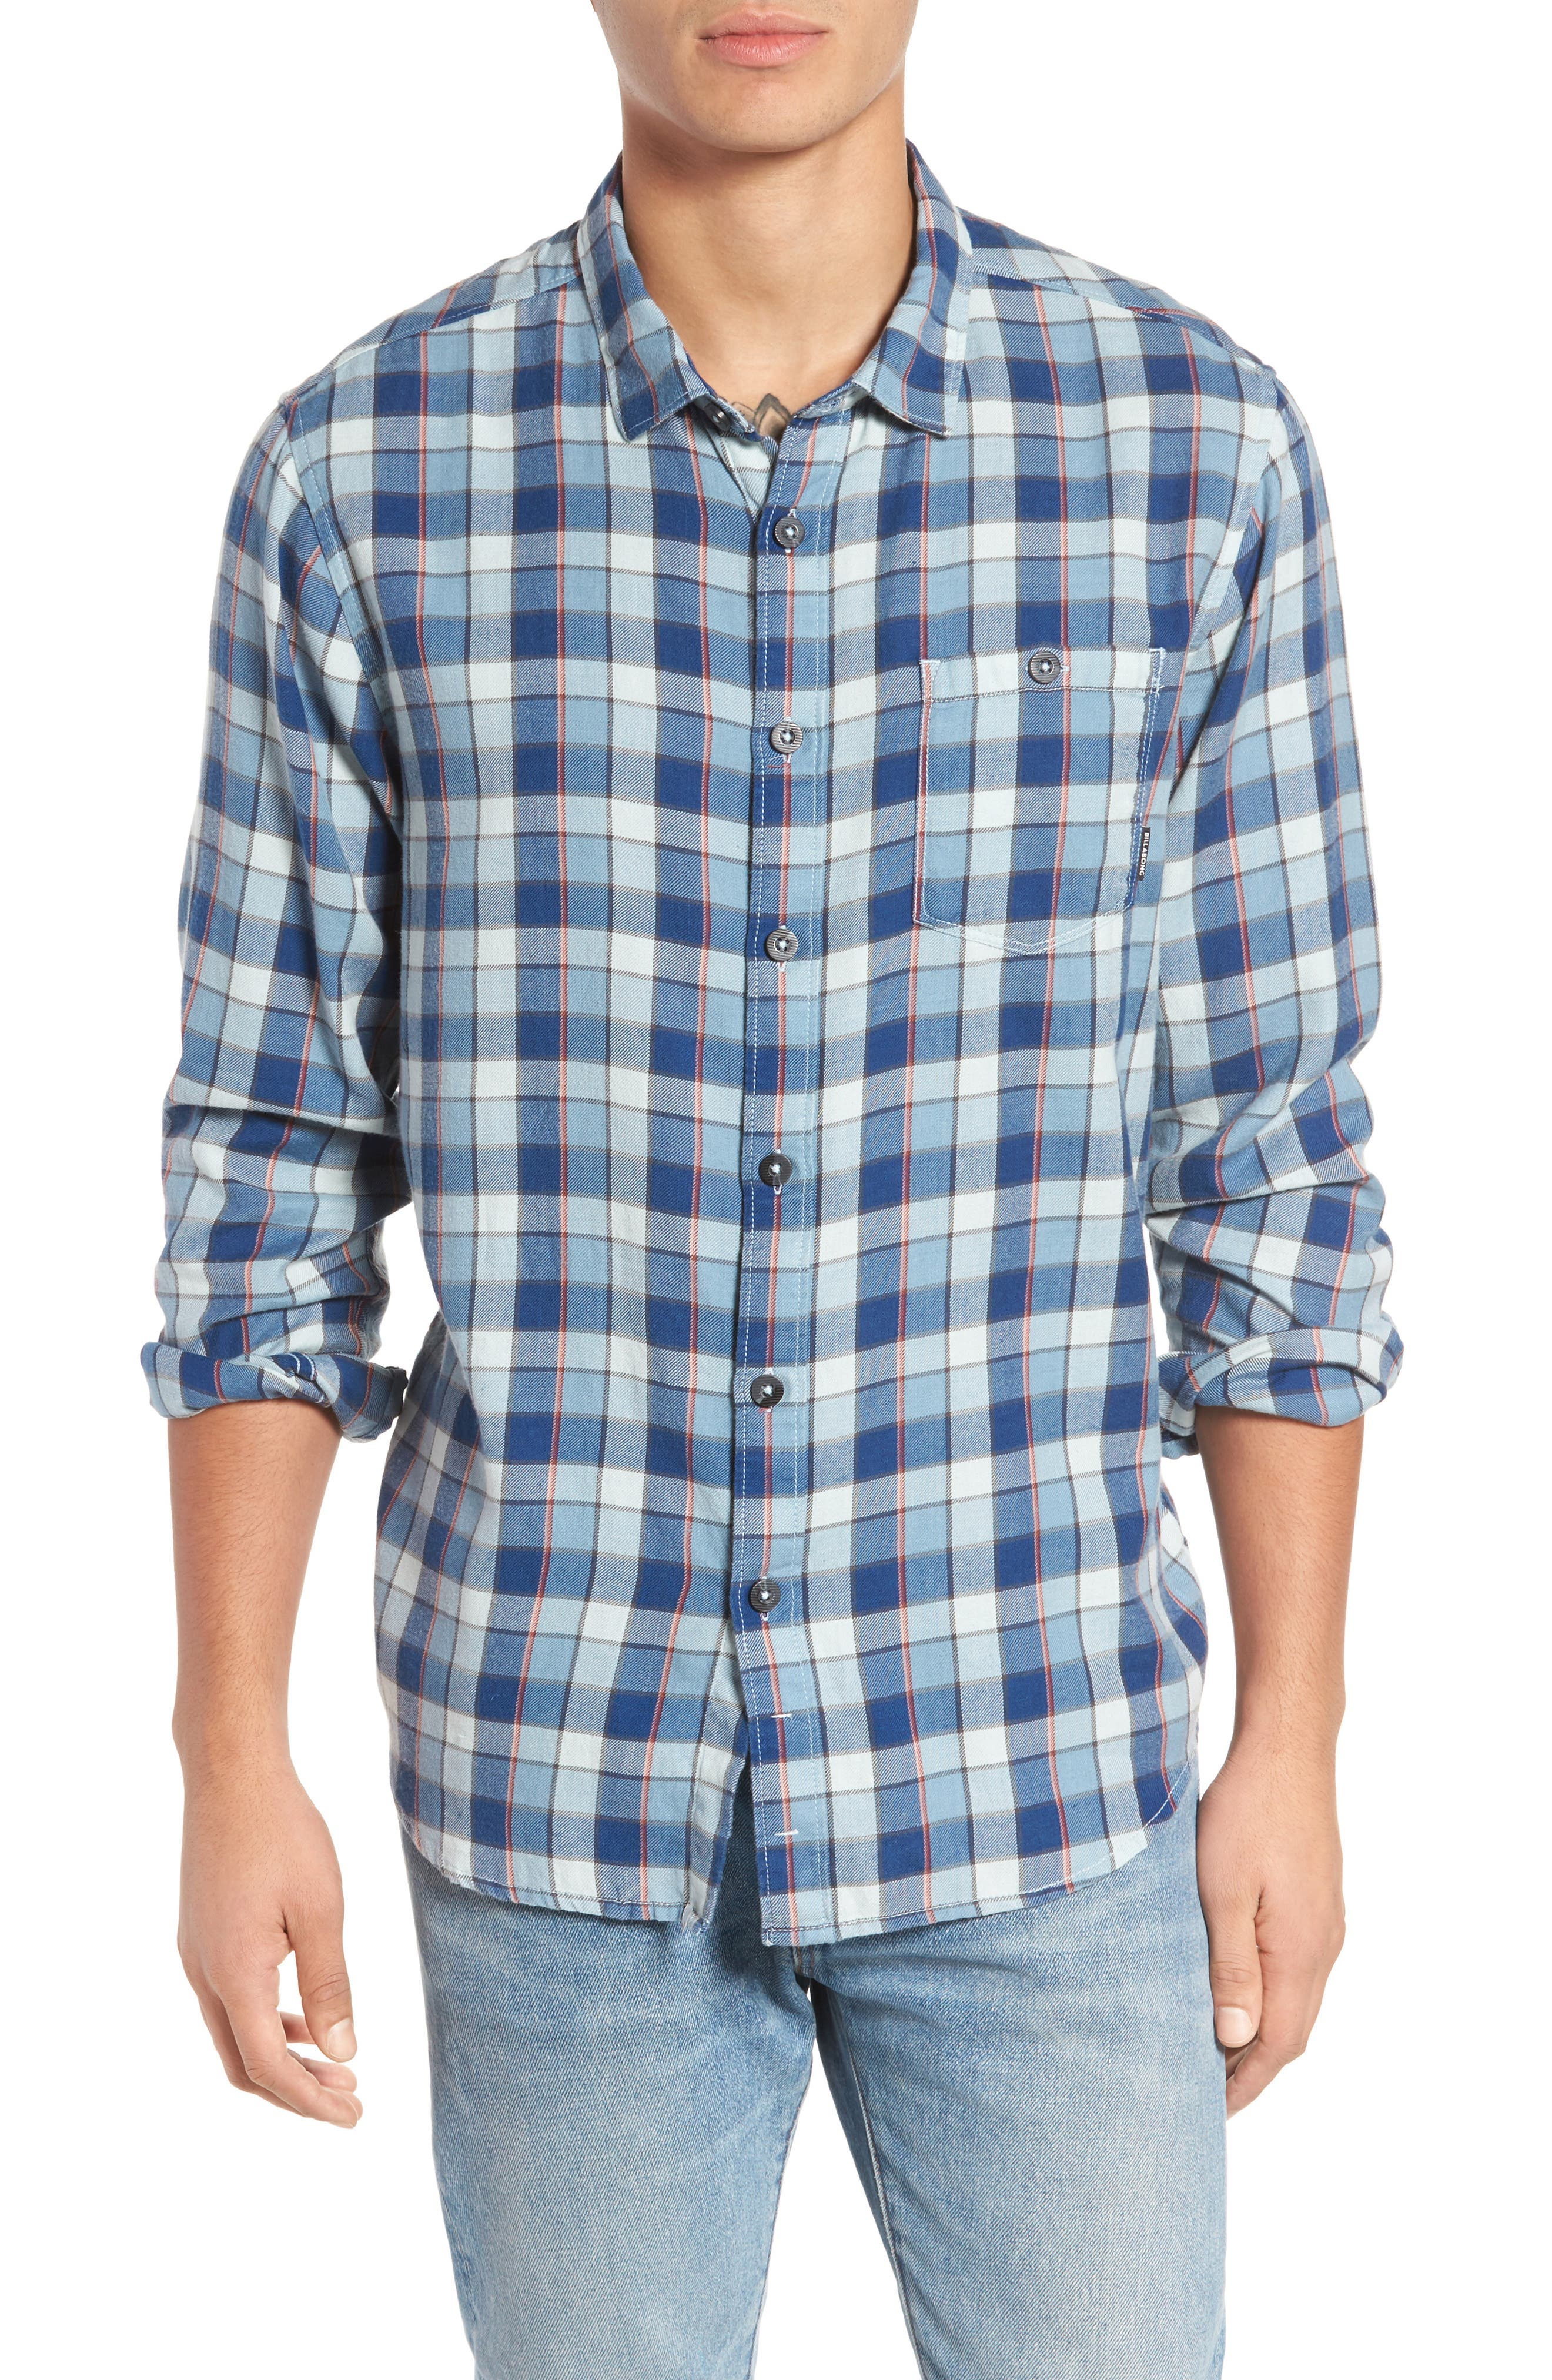 Bilabong Freemont Flannel Shirt,                             Main thumbnail 1, color,                             428